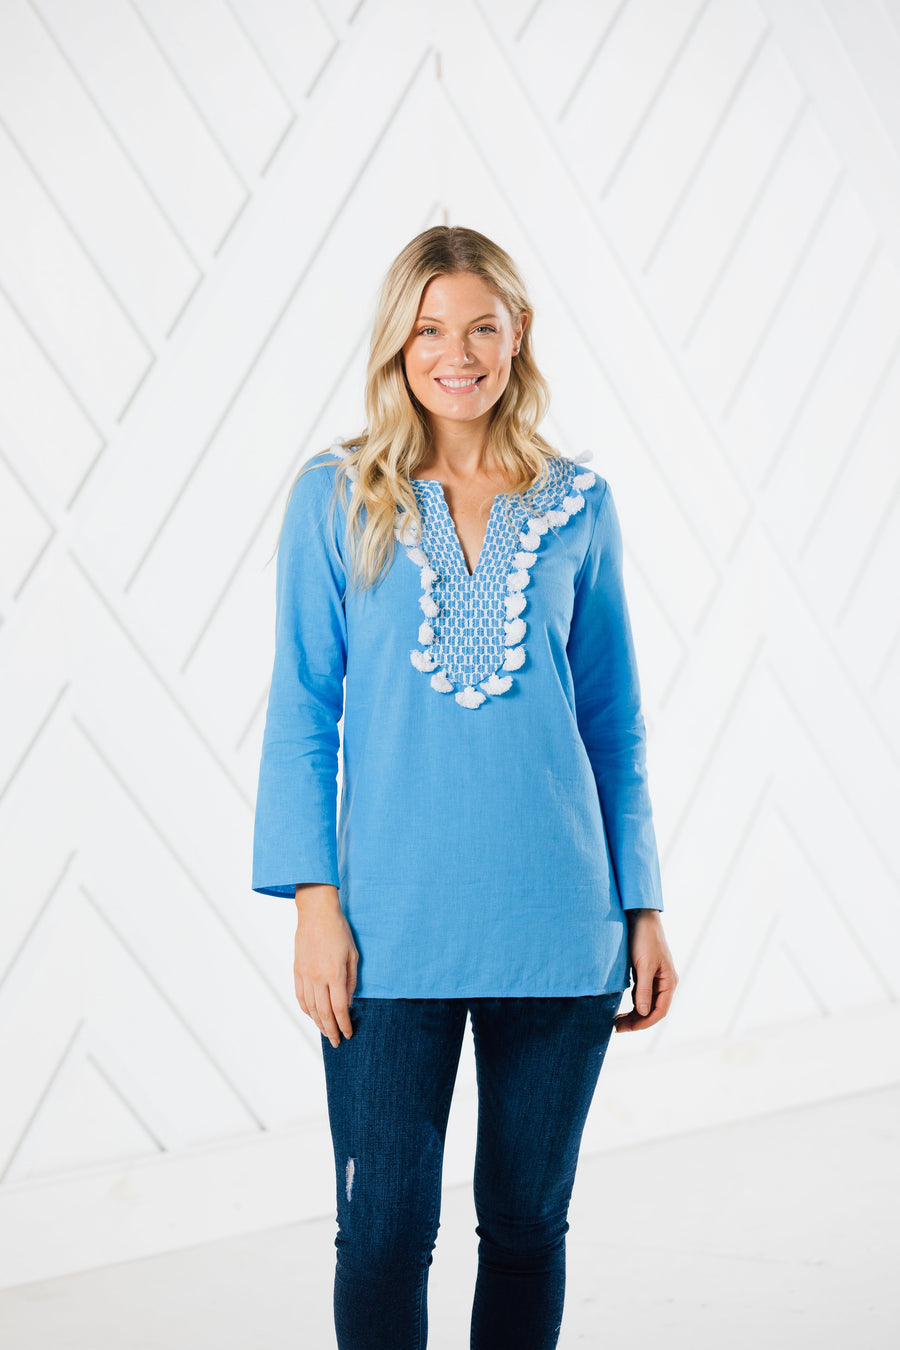 Tassel Tunic Top with Embroidered Trim (two colors)